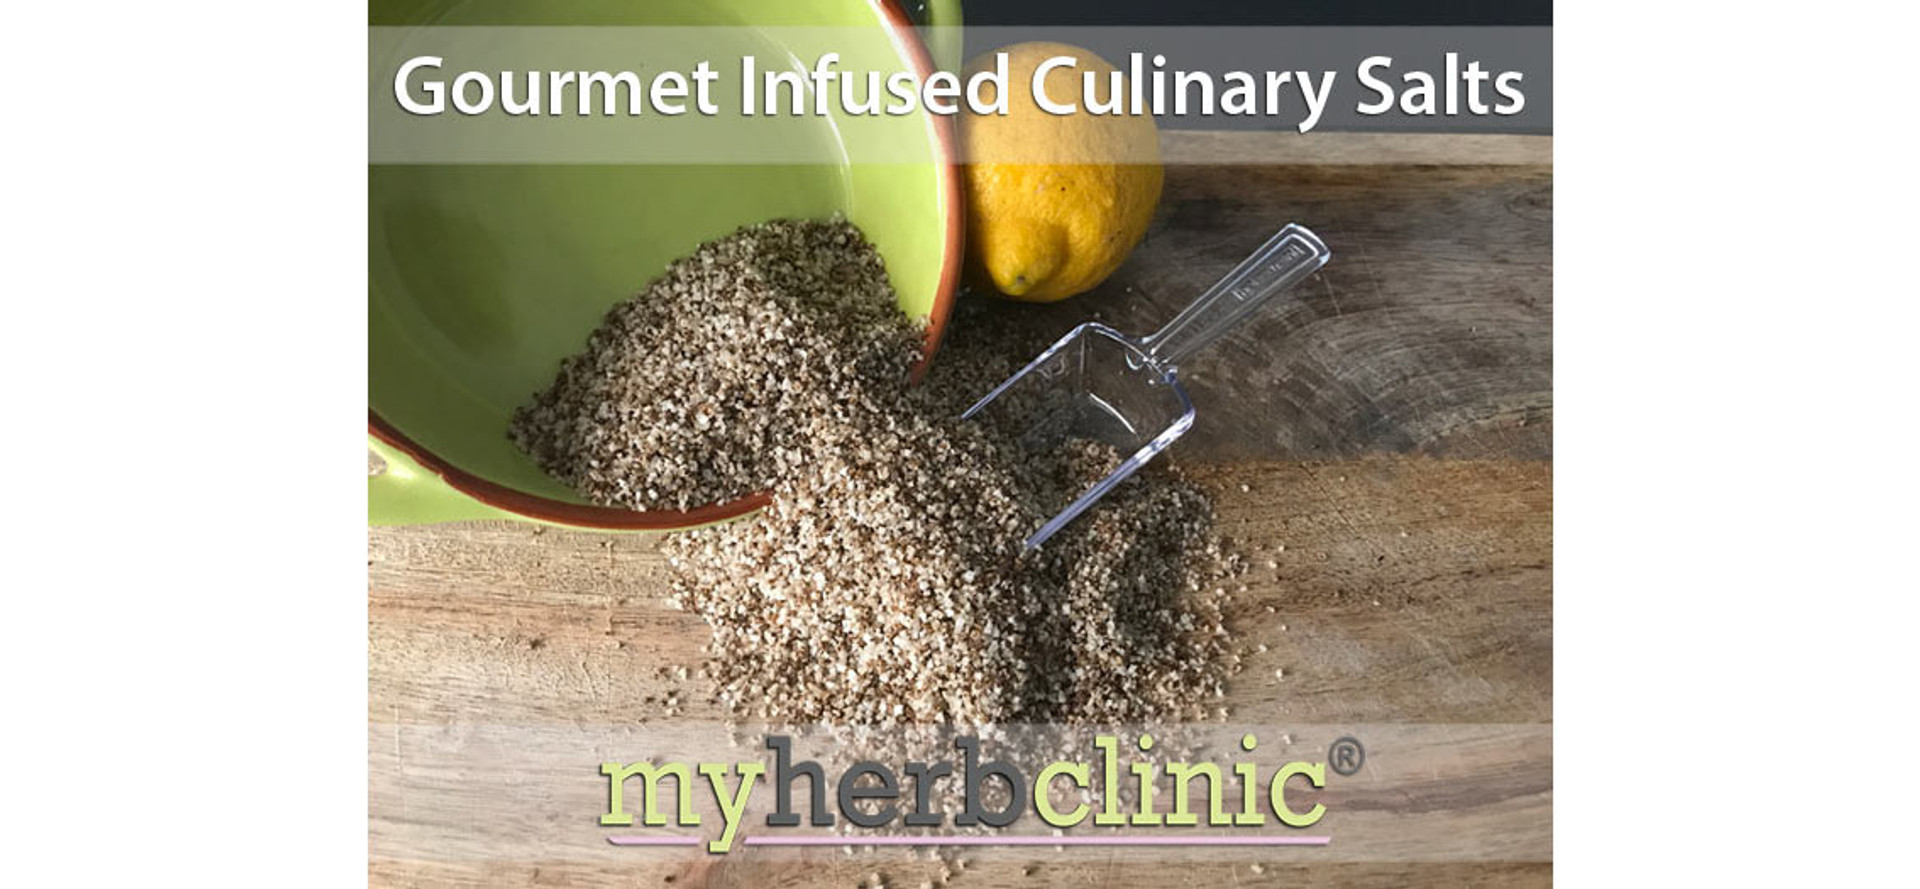 Gourmet Infused Culinary Salts